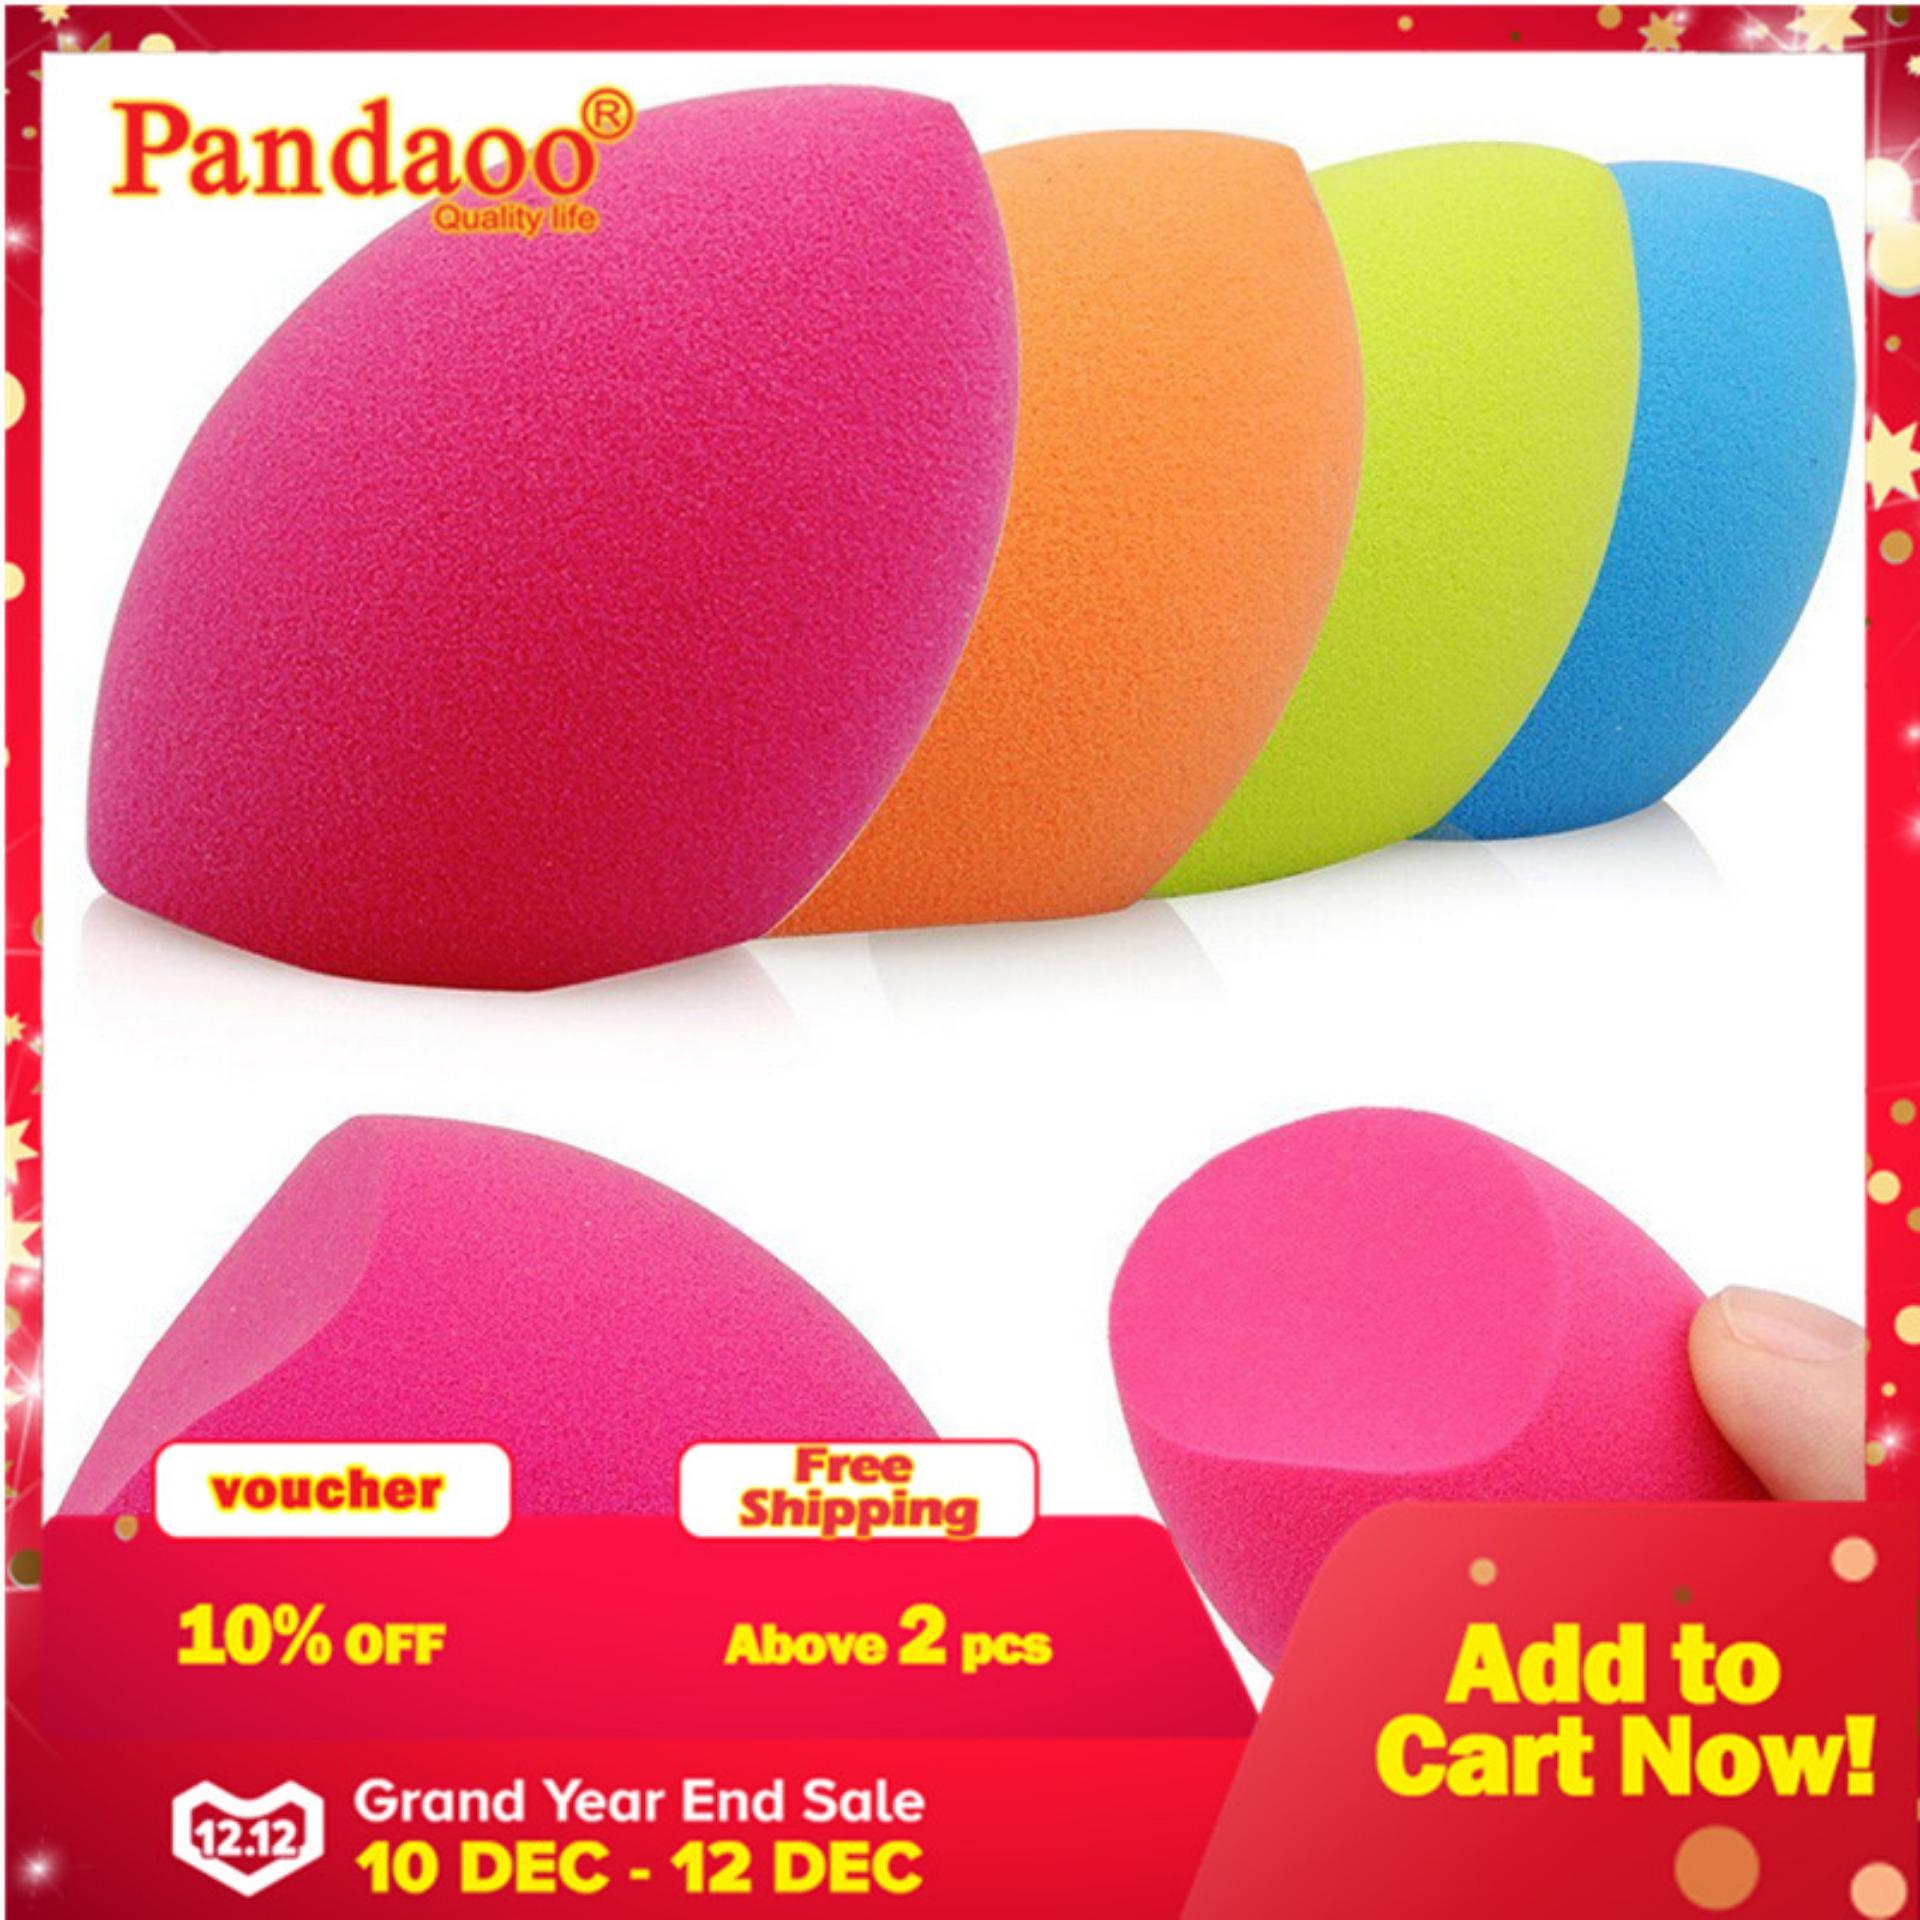 4pcs Makeup Sponge Blender Foundation Powder Puff Flawless Blending Cosmetic Puff Makeup Tools Beauty Egg Facial Make Up Sponge By Pandaoo Store.